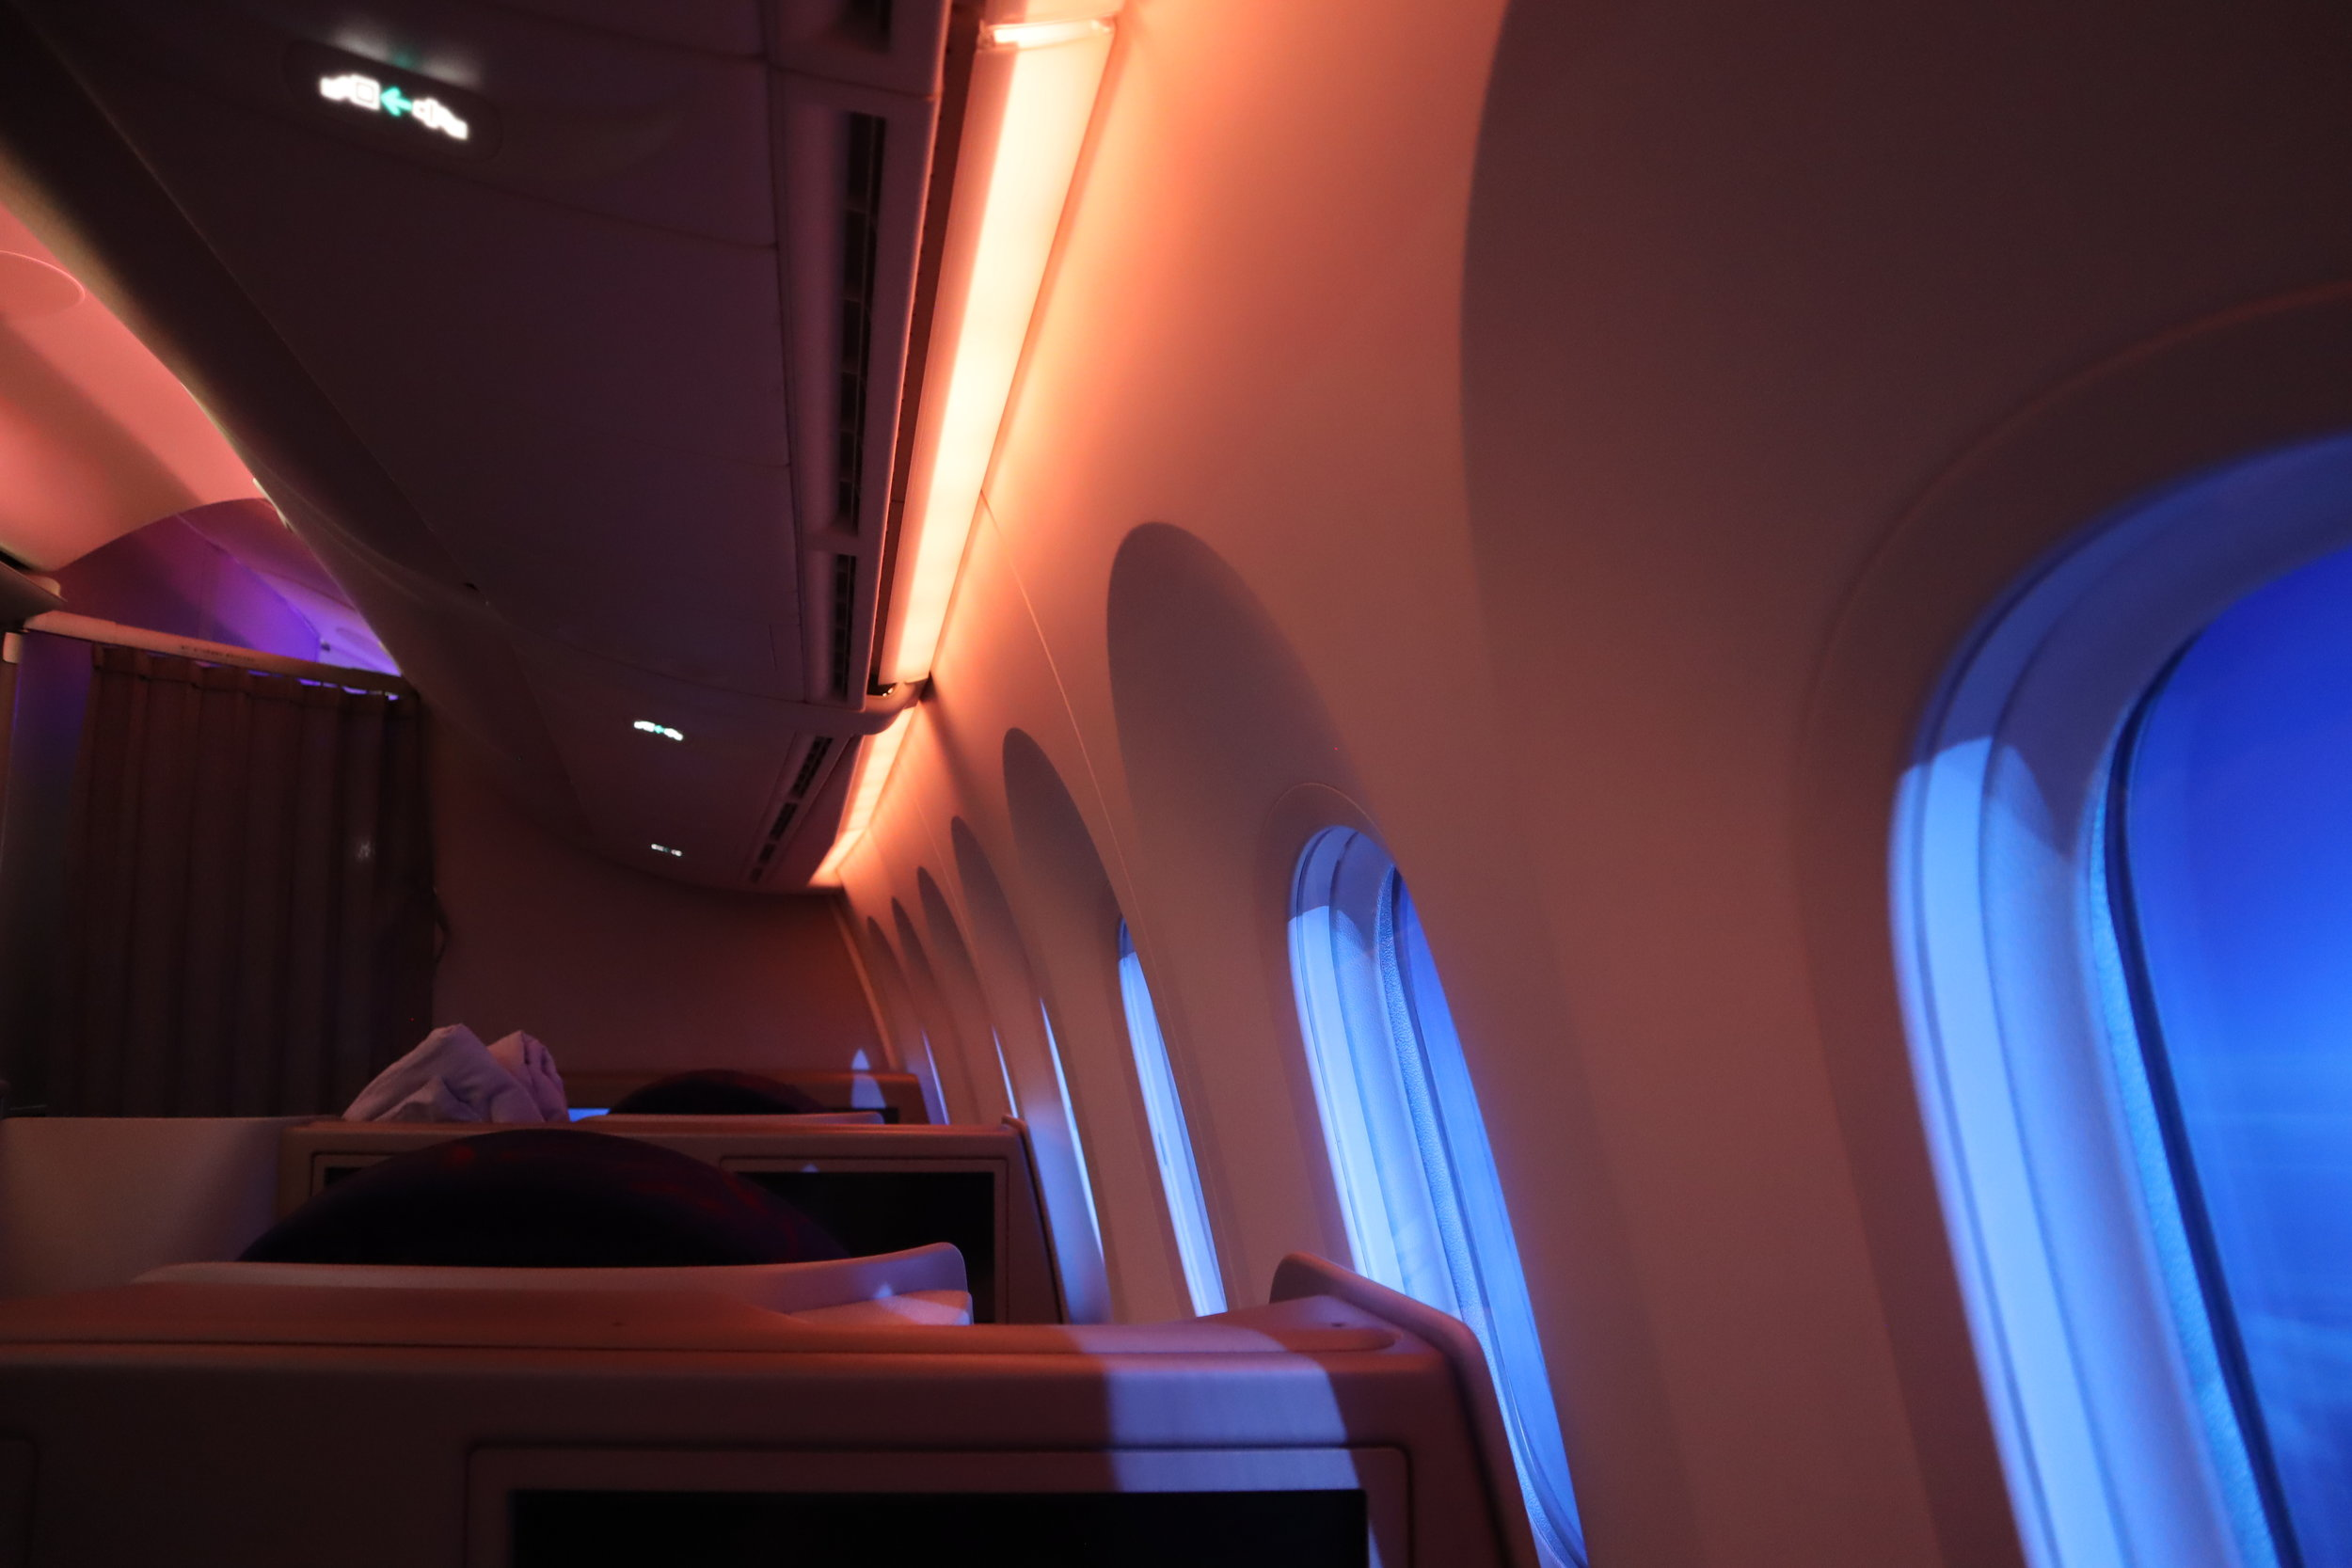 Air China business class – Dimmed windows